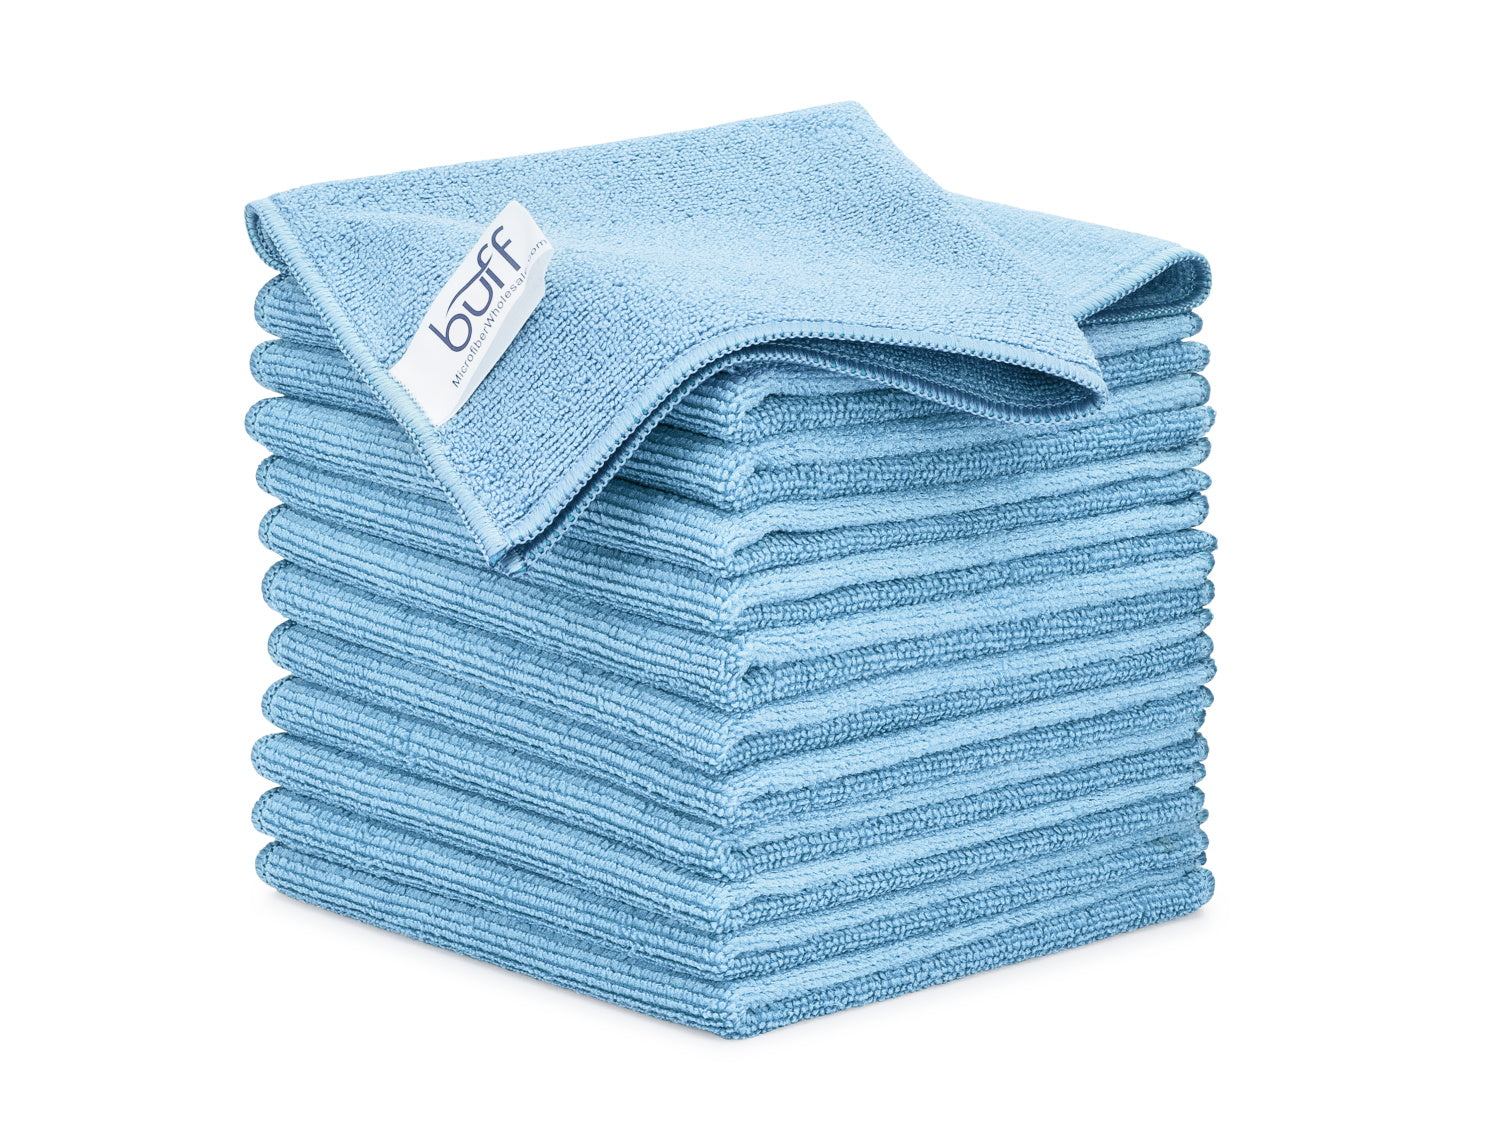 Blue Microfiber Cleaning Cloths 12 Pack